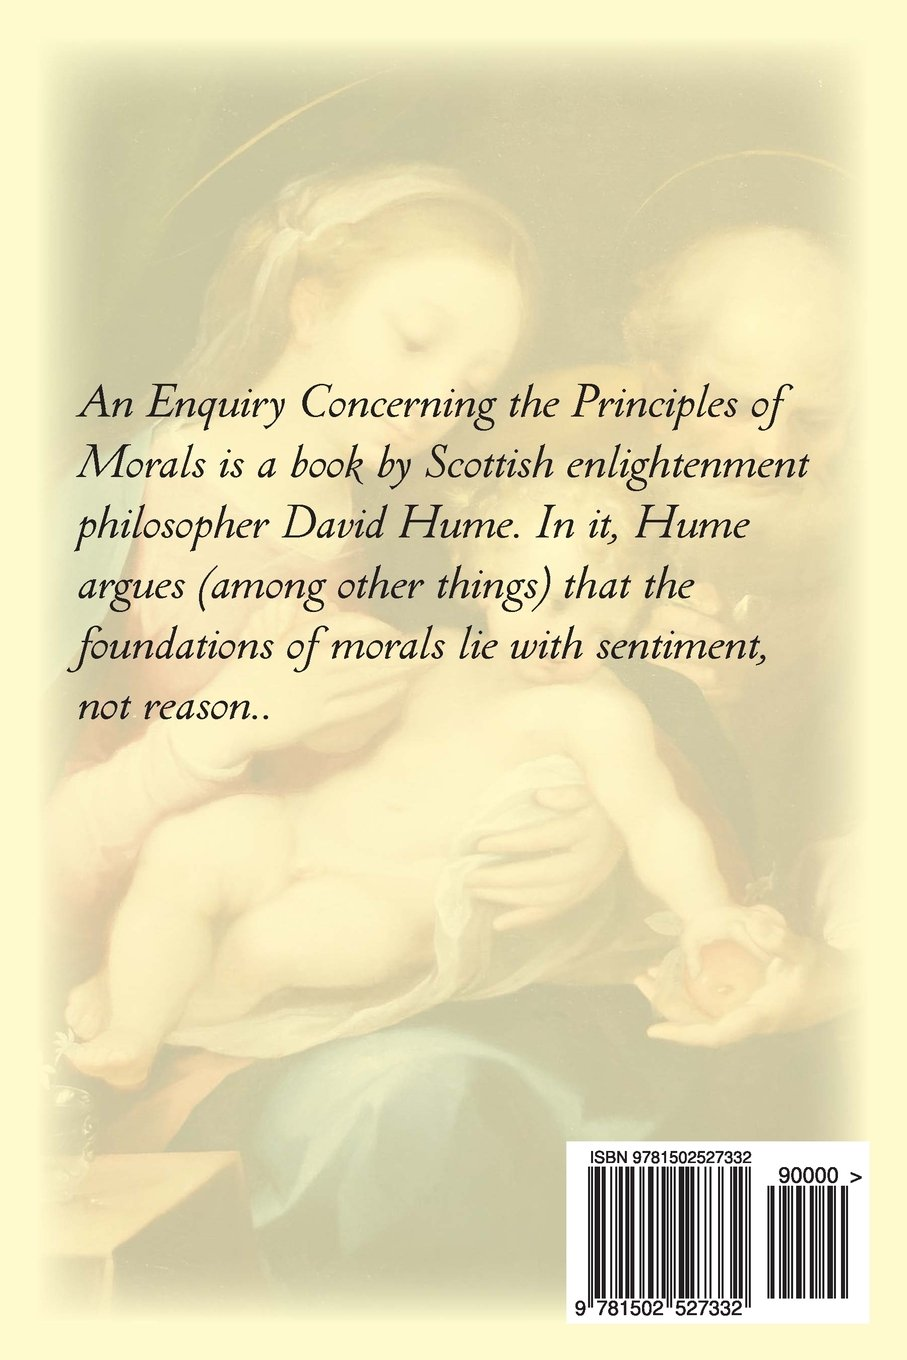 an enquiry concerning the principles of morals david hume an enquiry concerning the principles of morals david hume 9781502527332 com books